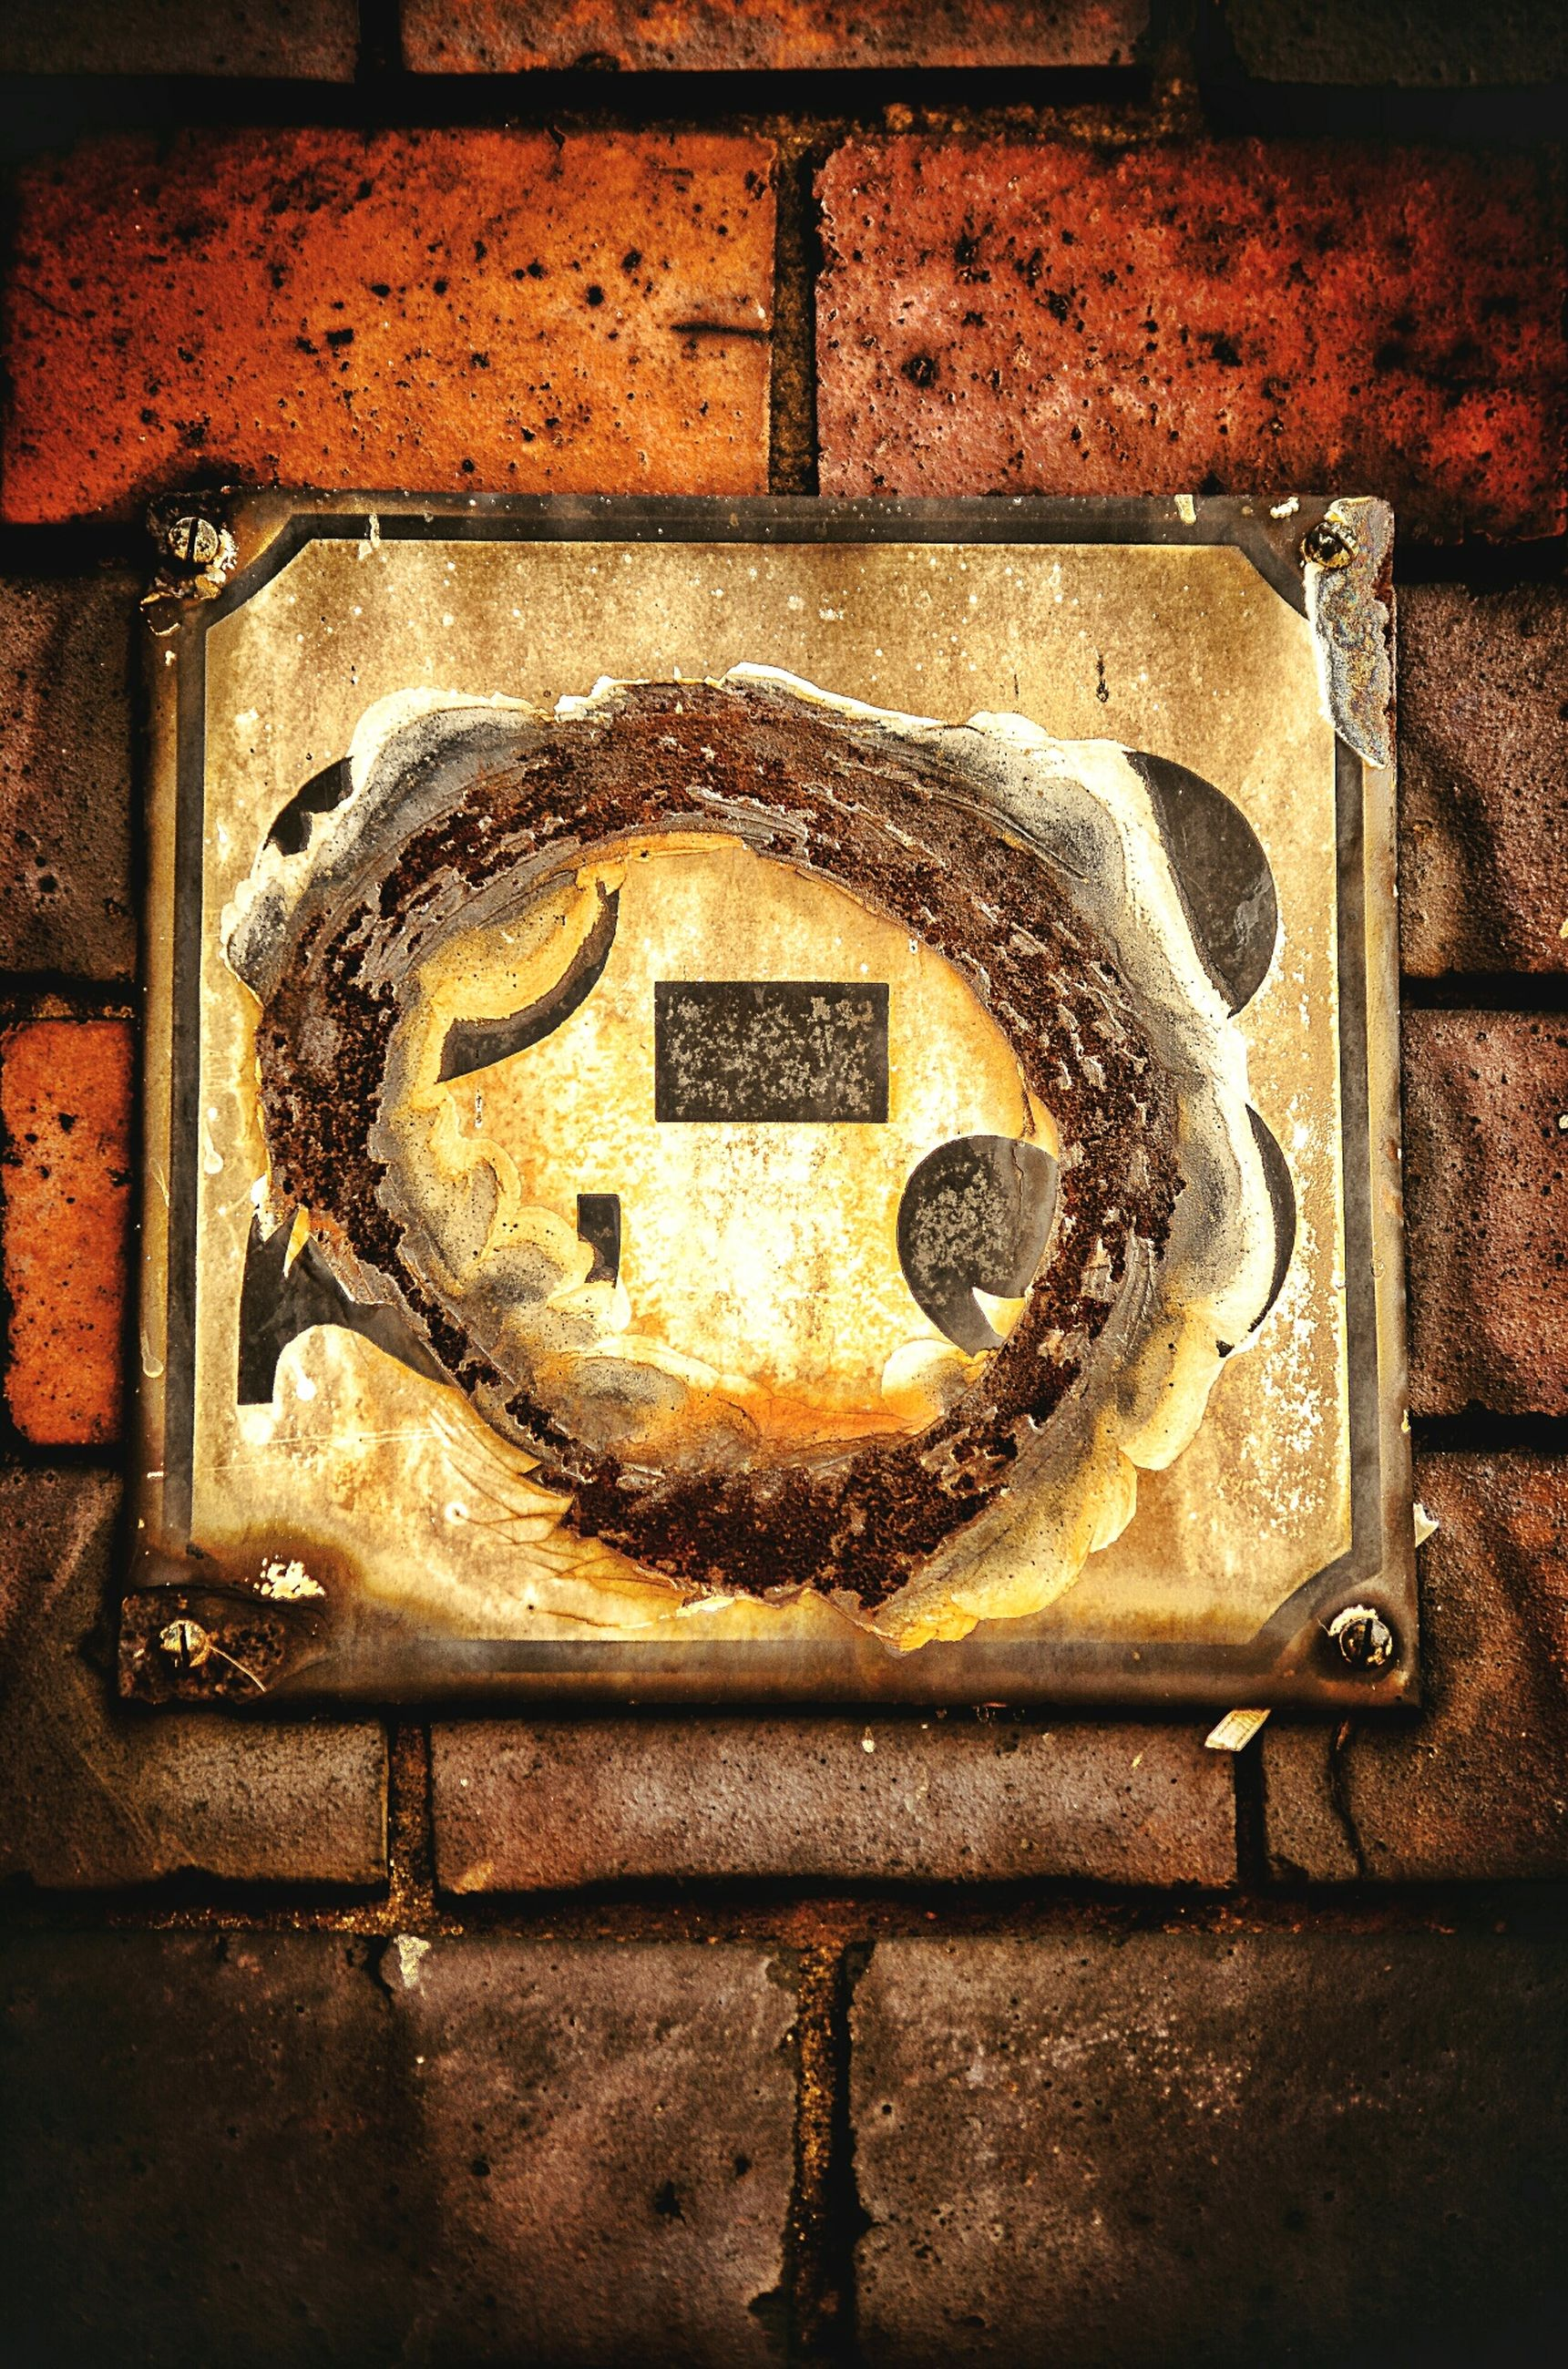 metal, communication, text, western script, rusty, close-up, indoors, old, wall - building feature, metallic, no people, number, metal grate, high angle view, old-fashioned, day, capital letter, safety, door